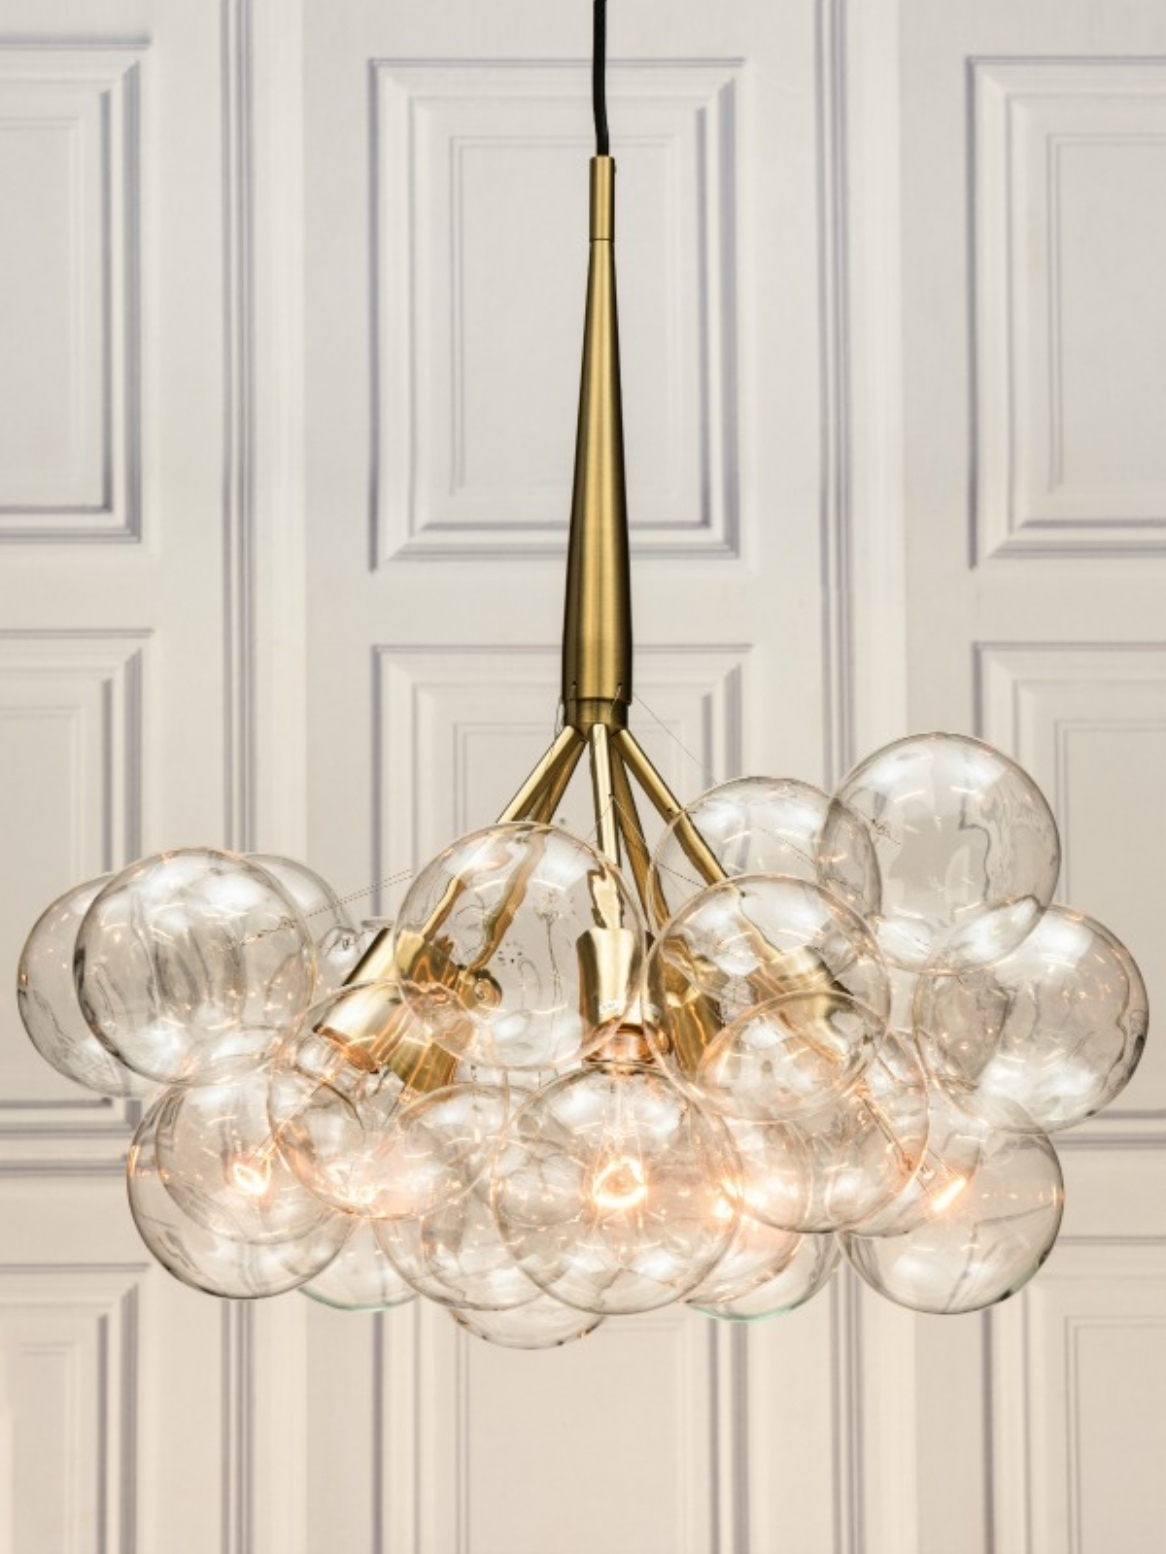 Newest Retro Chandeliers With Regard To Chandeliers Design : Awesome Large Globe Chandelier Retro Glass (View 12 of 20)